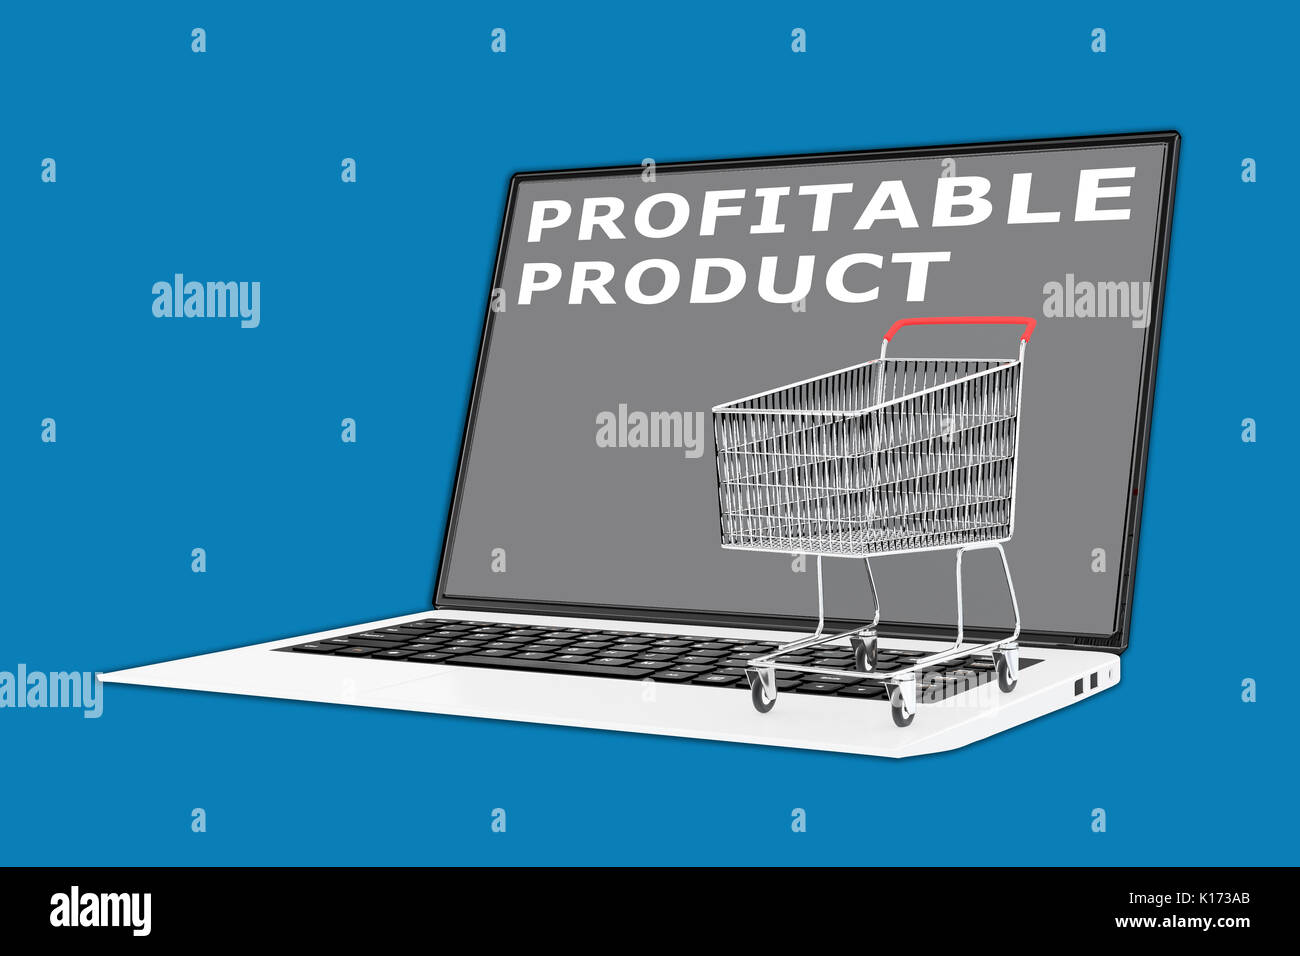 3D illustration of 'PROFITABLE PRODUCT' script with a supermarket cart placed on the keyboard - Stock Image